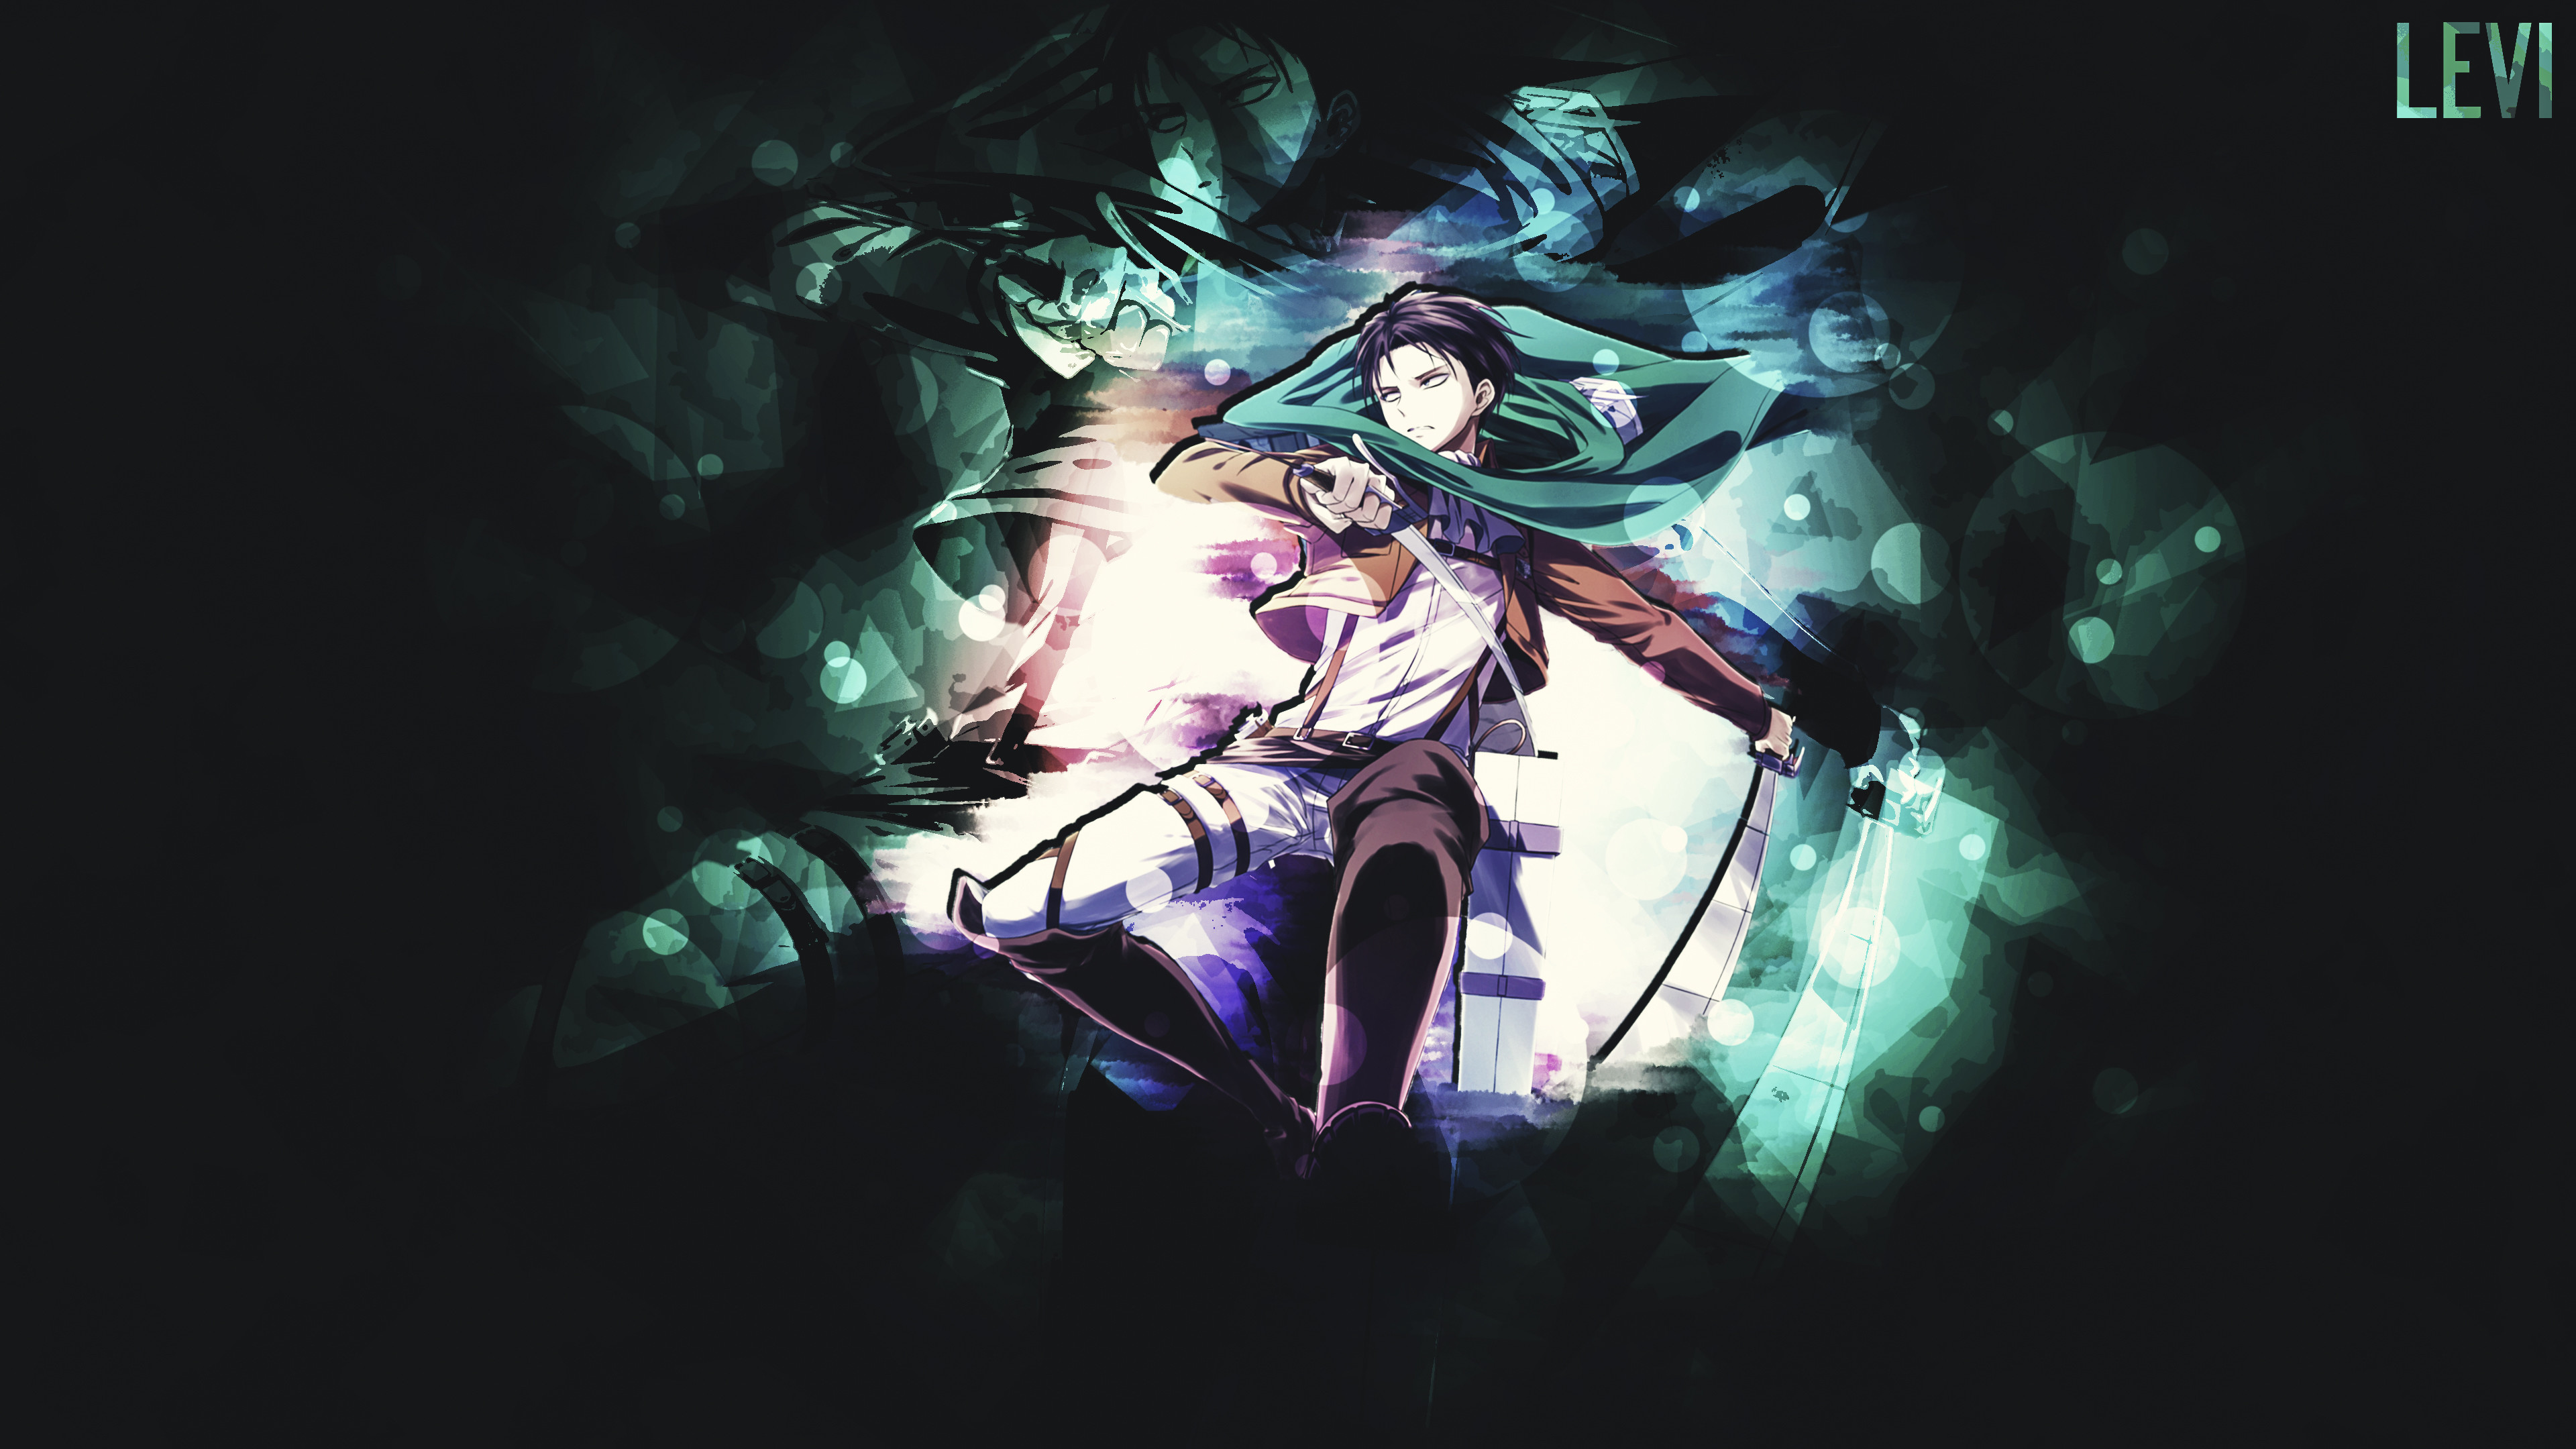 Captain Levi Wallpaper (74+ images)